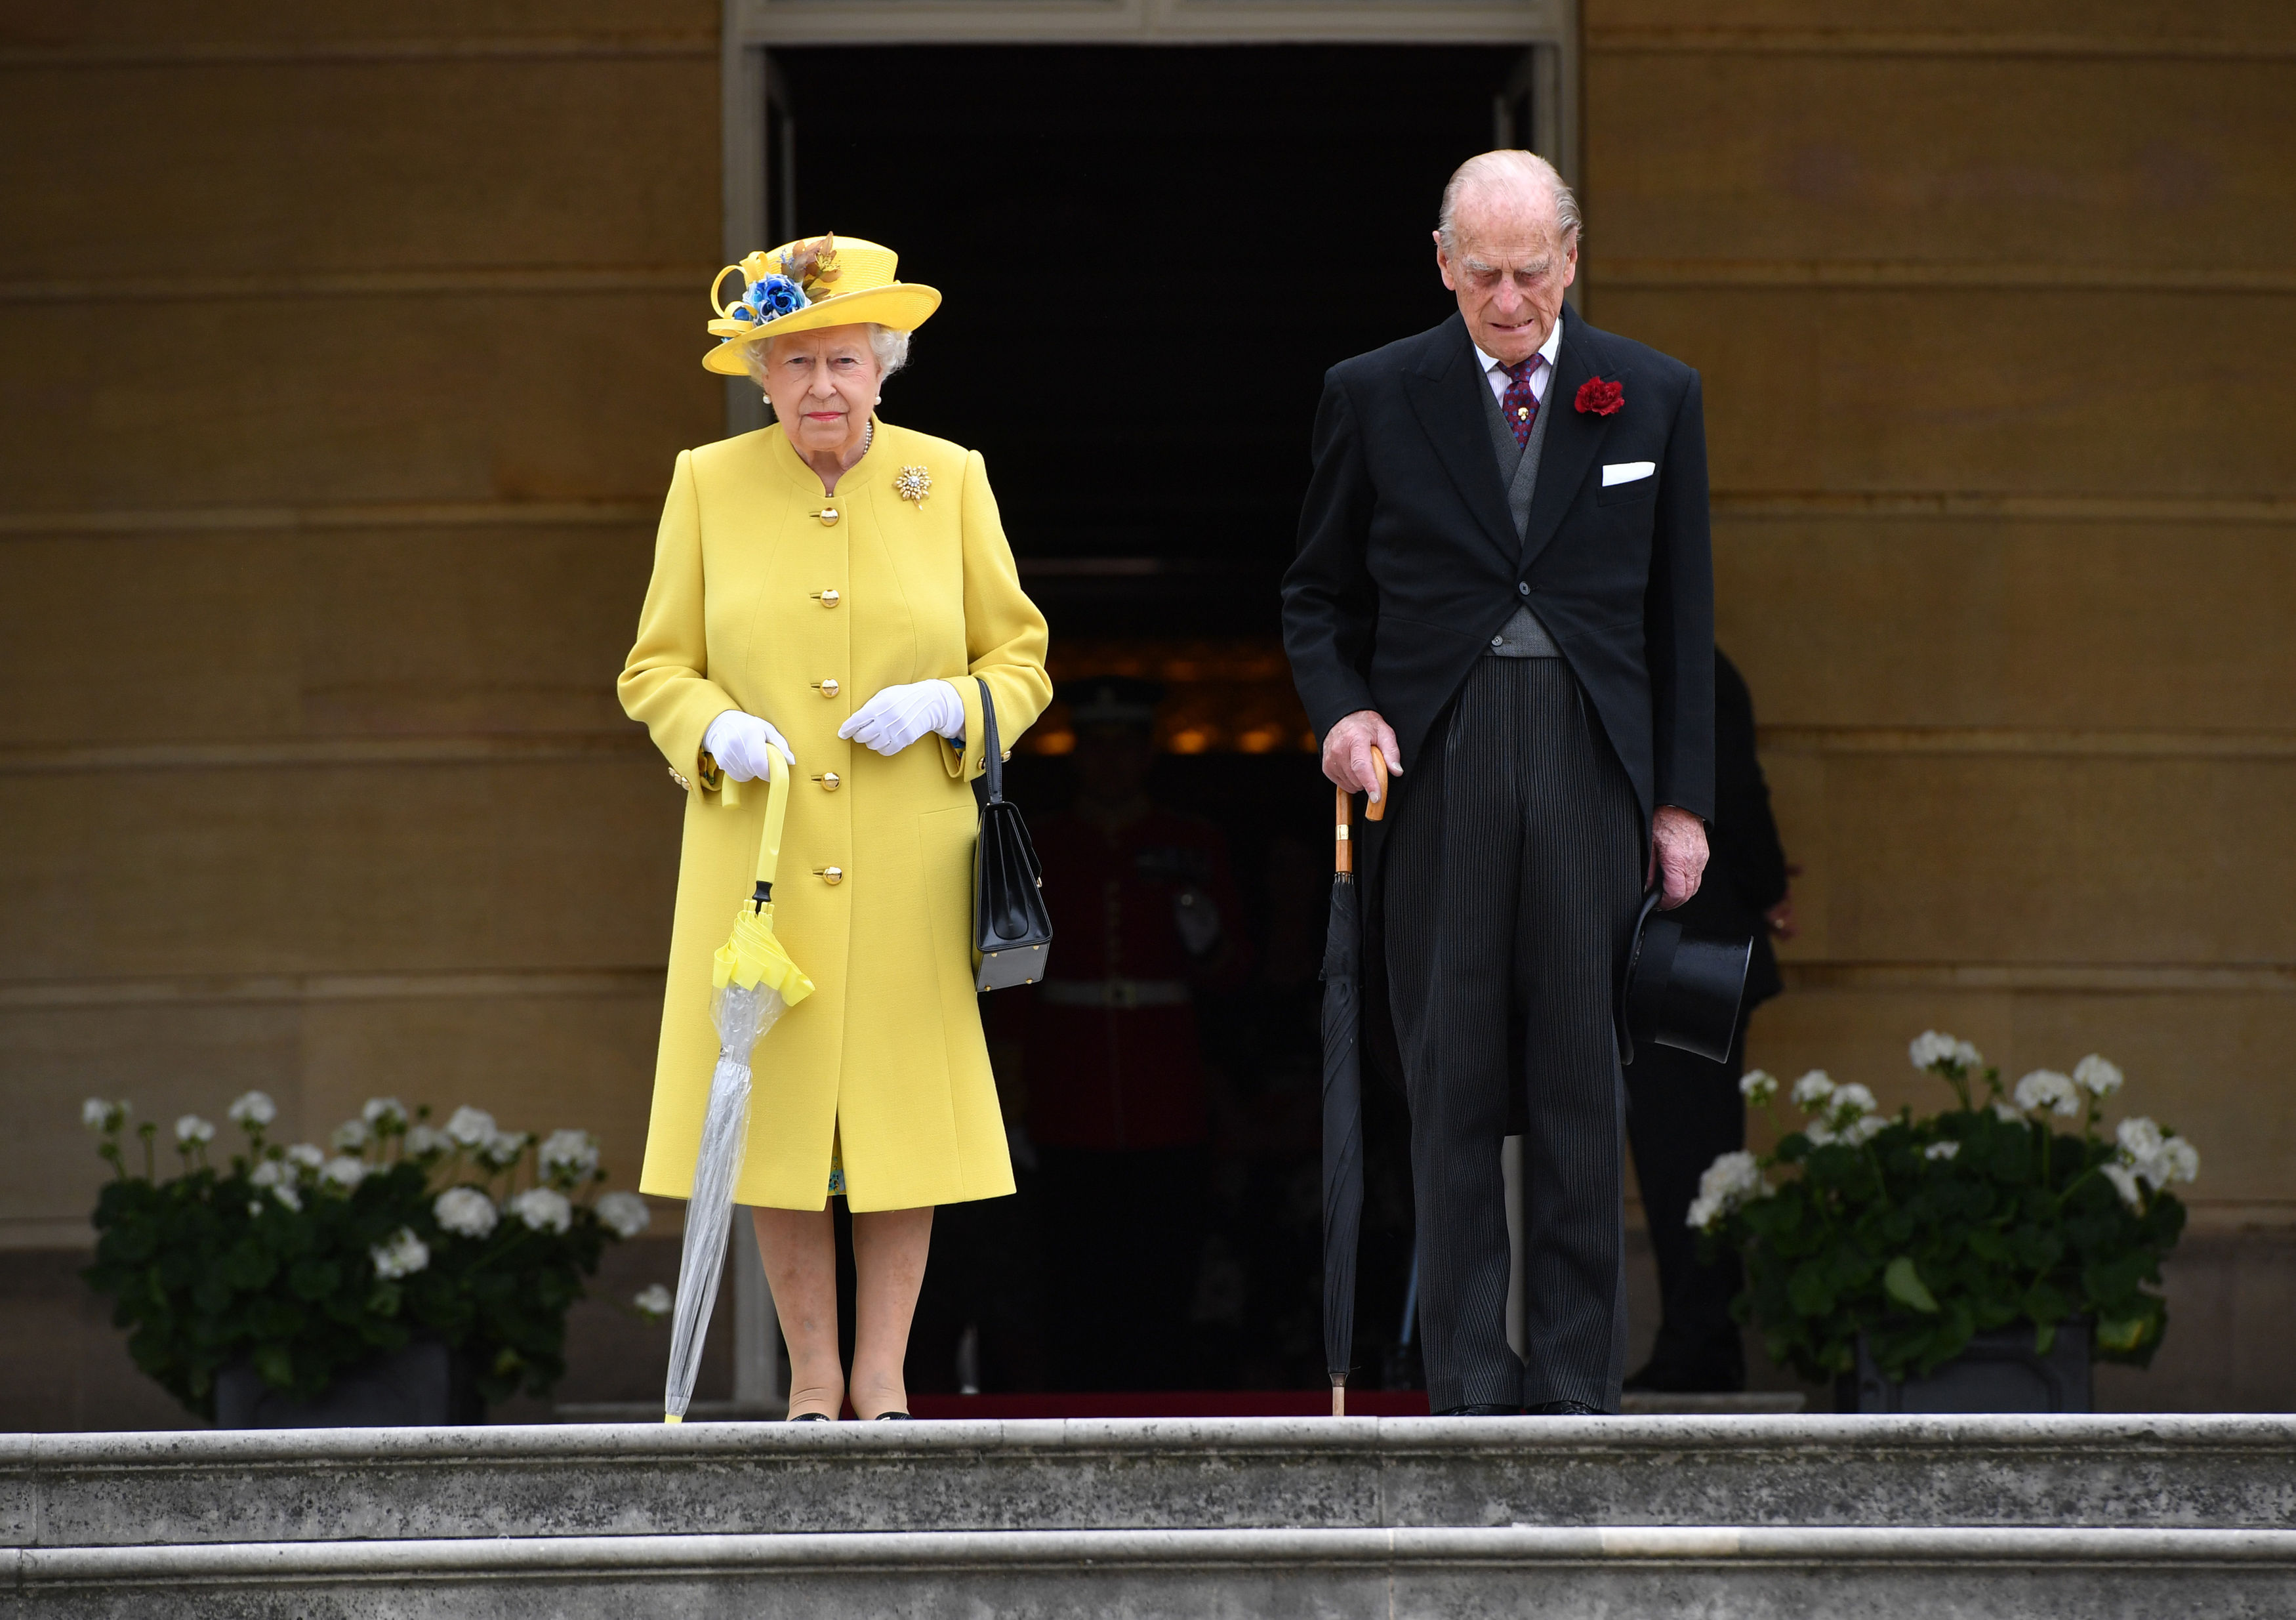 Knifeman Arrested Yards Away From The Queen At Buckingham Palace GettyImages 687300972